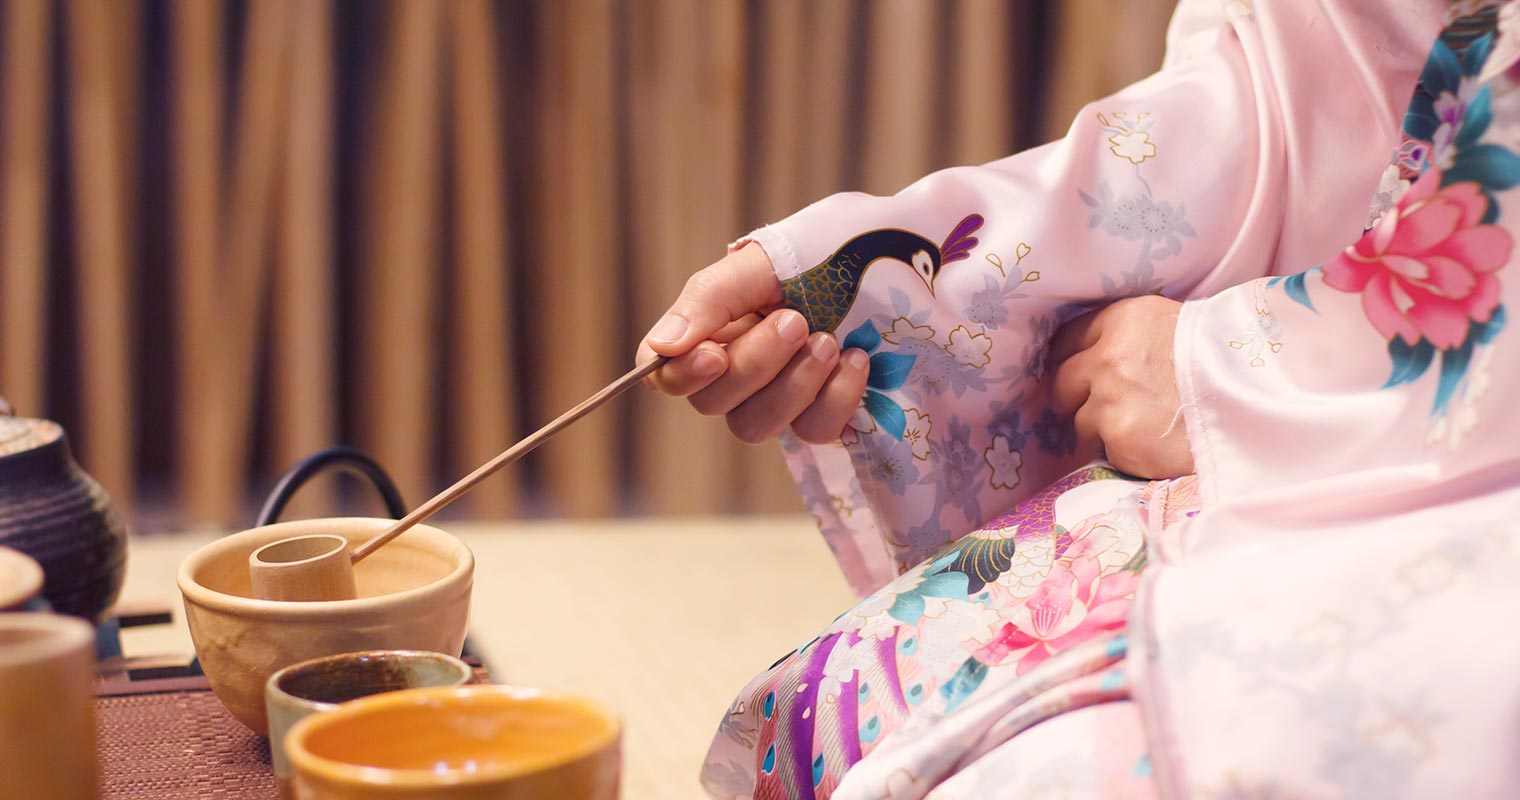 The highest form of hospitality is found through Japanese culture of Omotenashi